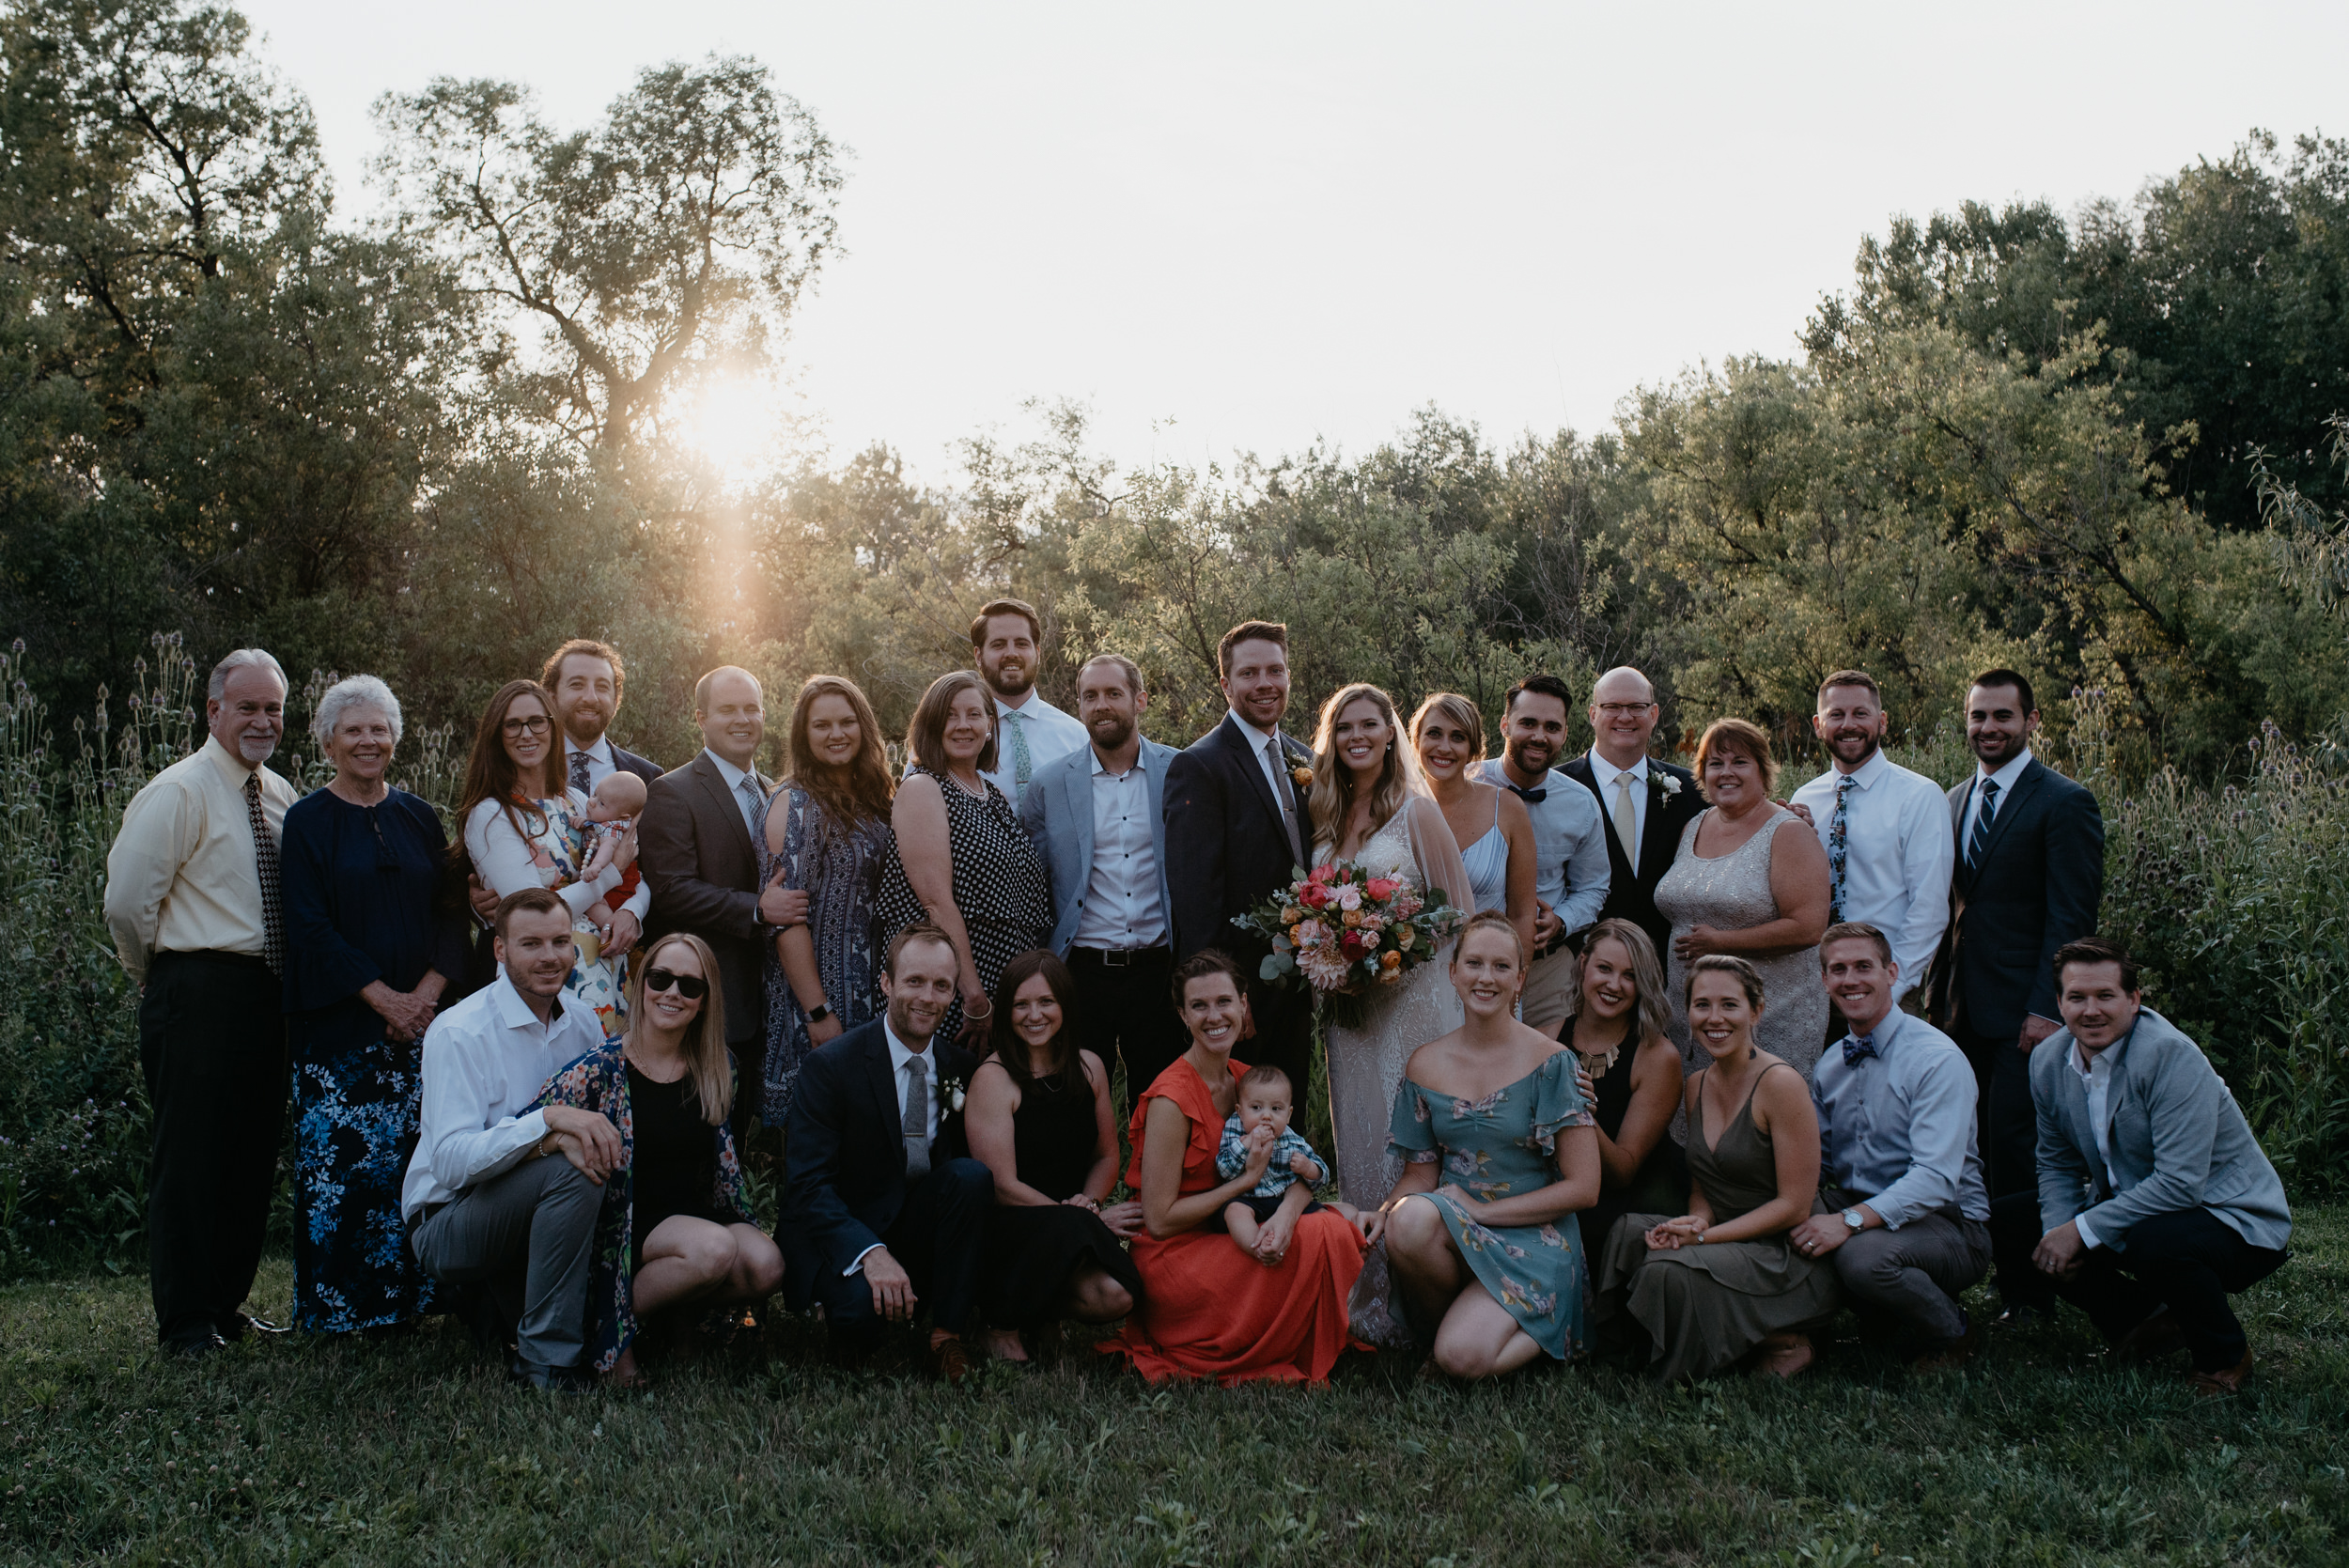 Entire group shot of all guests at wedding. Boulder, Colorado wedding and elopement photographer. Wedding at Three Leaf Farm.